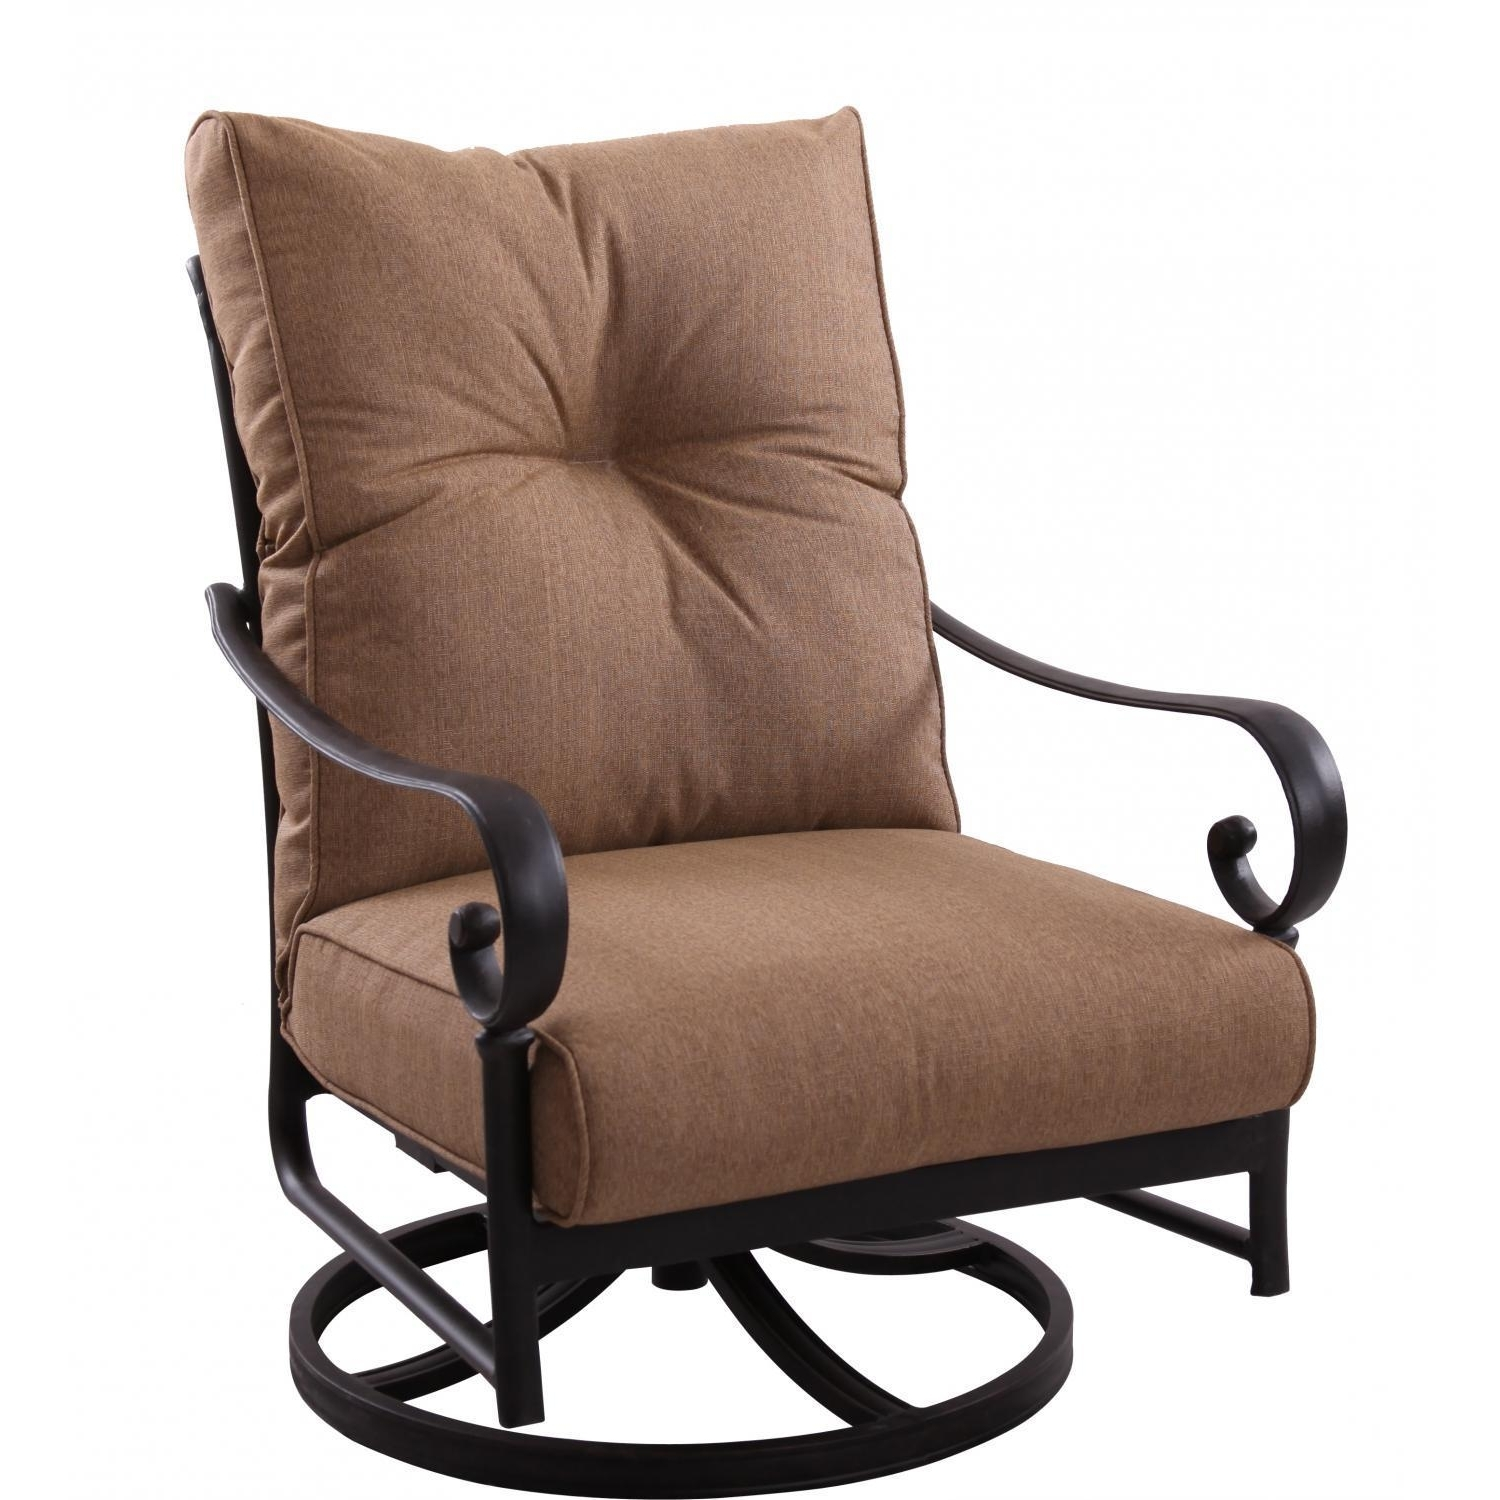 Darlee Santa Anita Cast Aluminum Patio Swivel Rocker Club Chair In Most Up To Date Rocking Chairs For Patio (View 8 of 15)